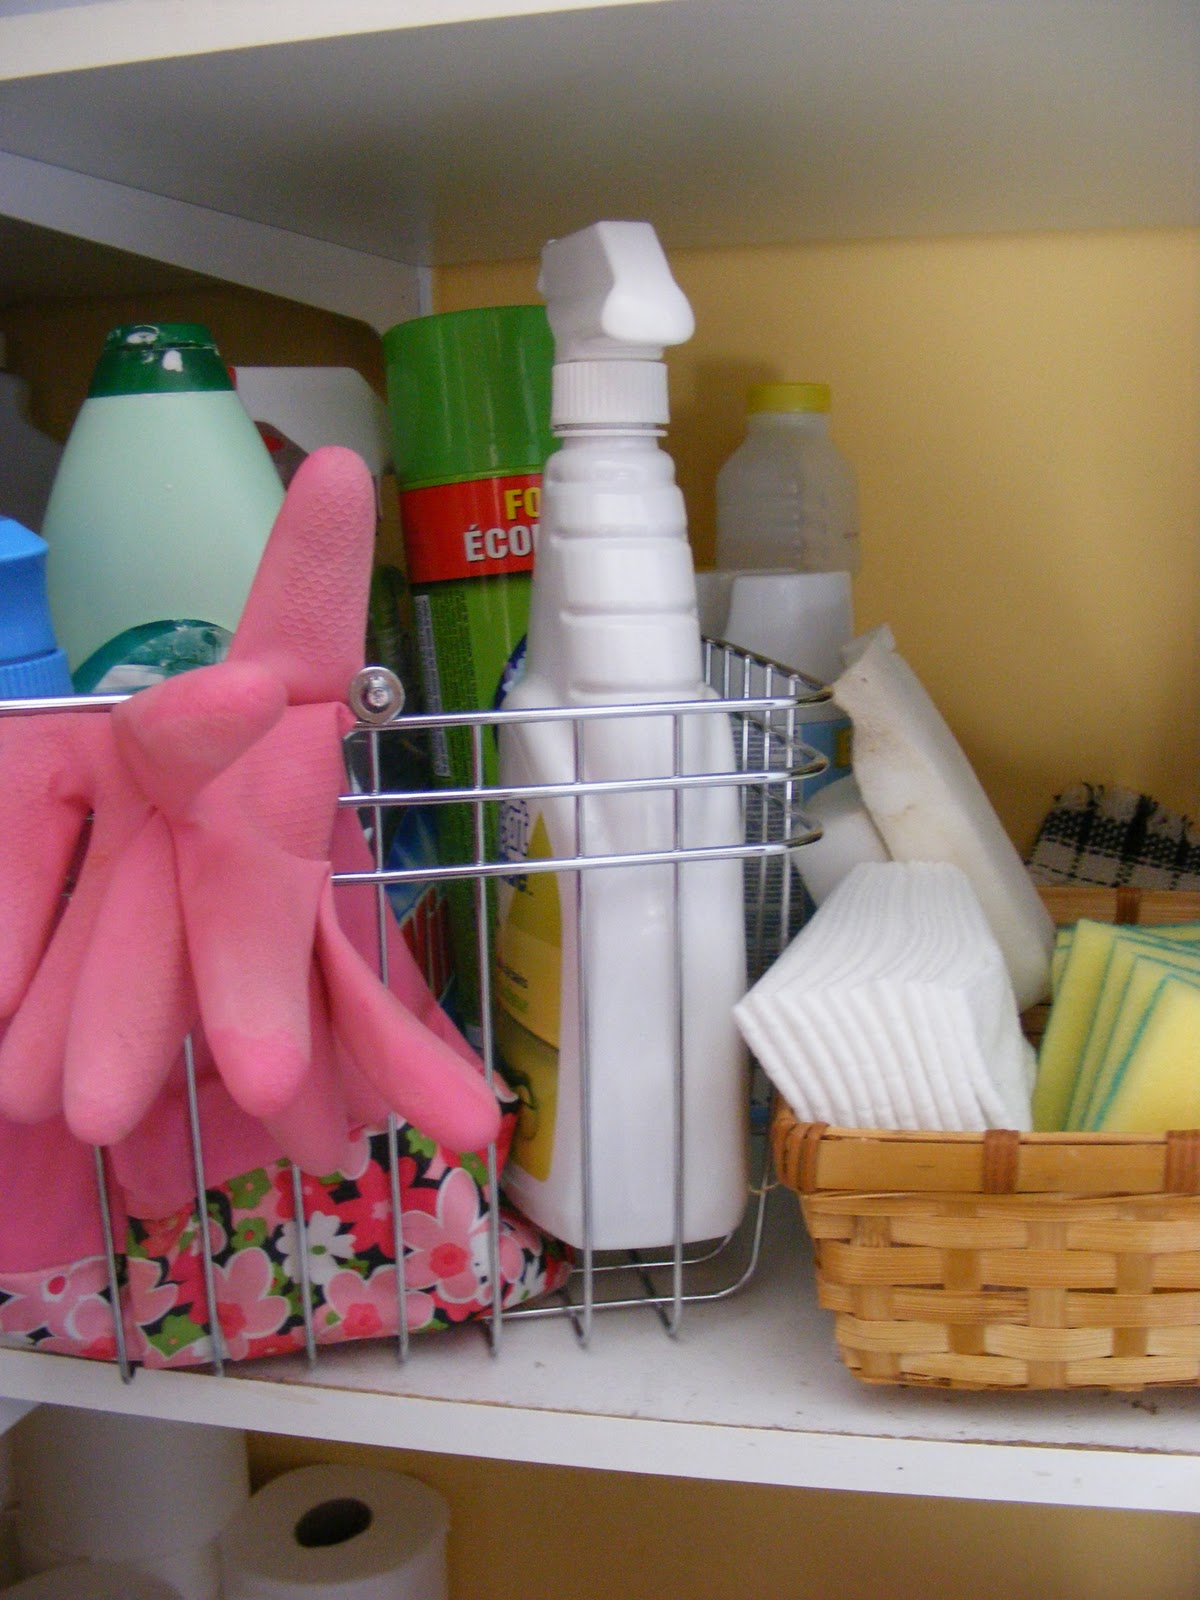 5 Things That Make A House Look Cleaner Than It Is | The Complete ...